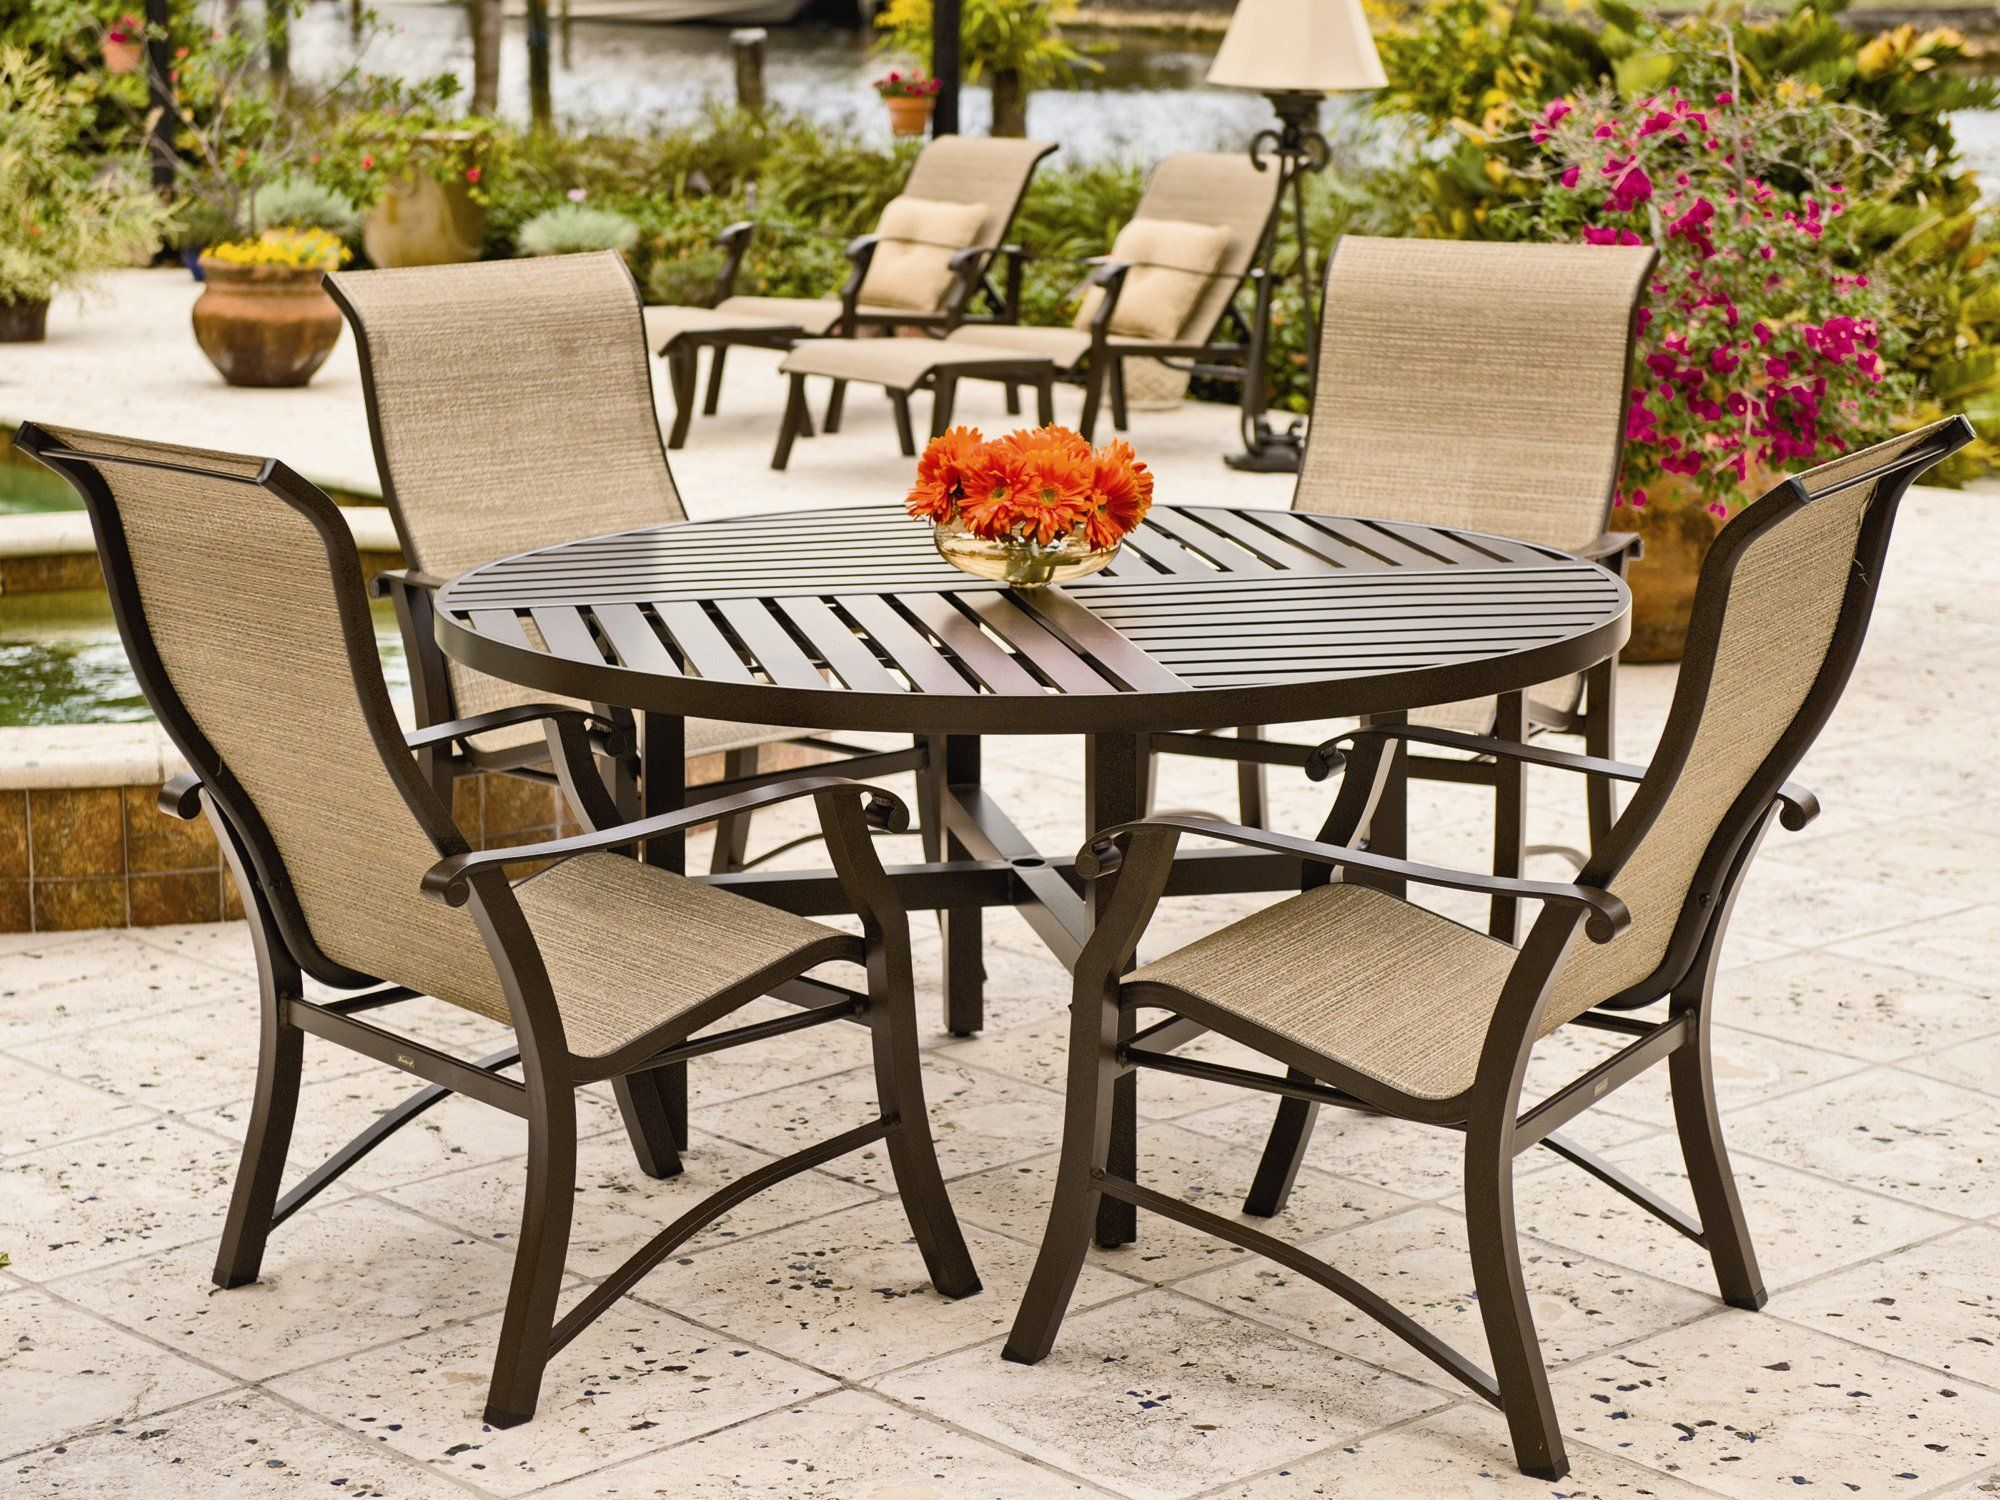 13 The Best Stone Patio Ideas (Dengan gambar) on Living Accents Cortland Patio Set id=28232